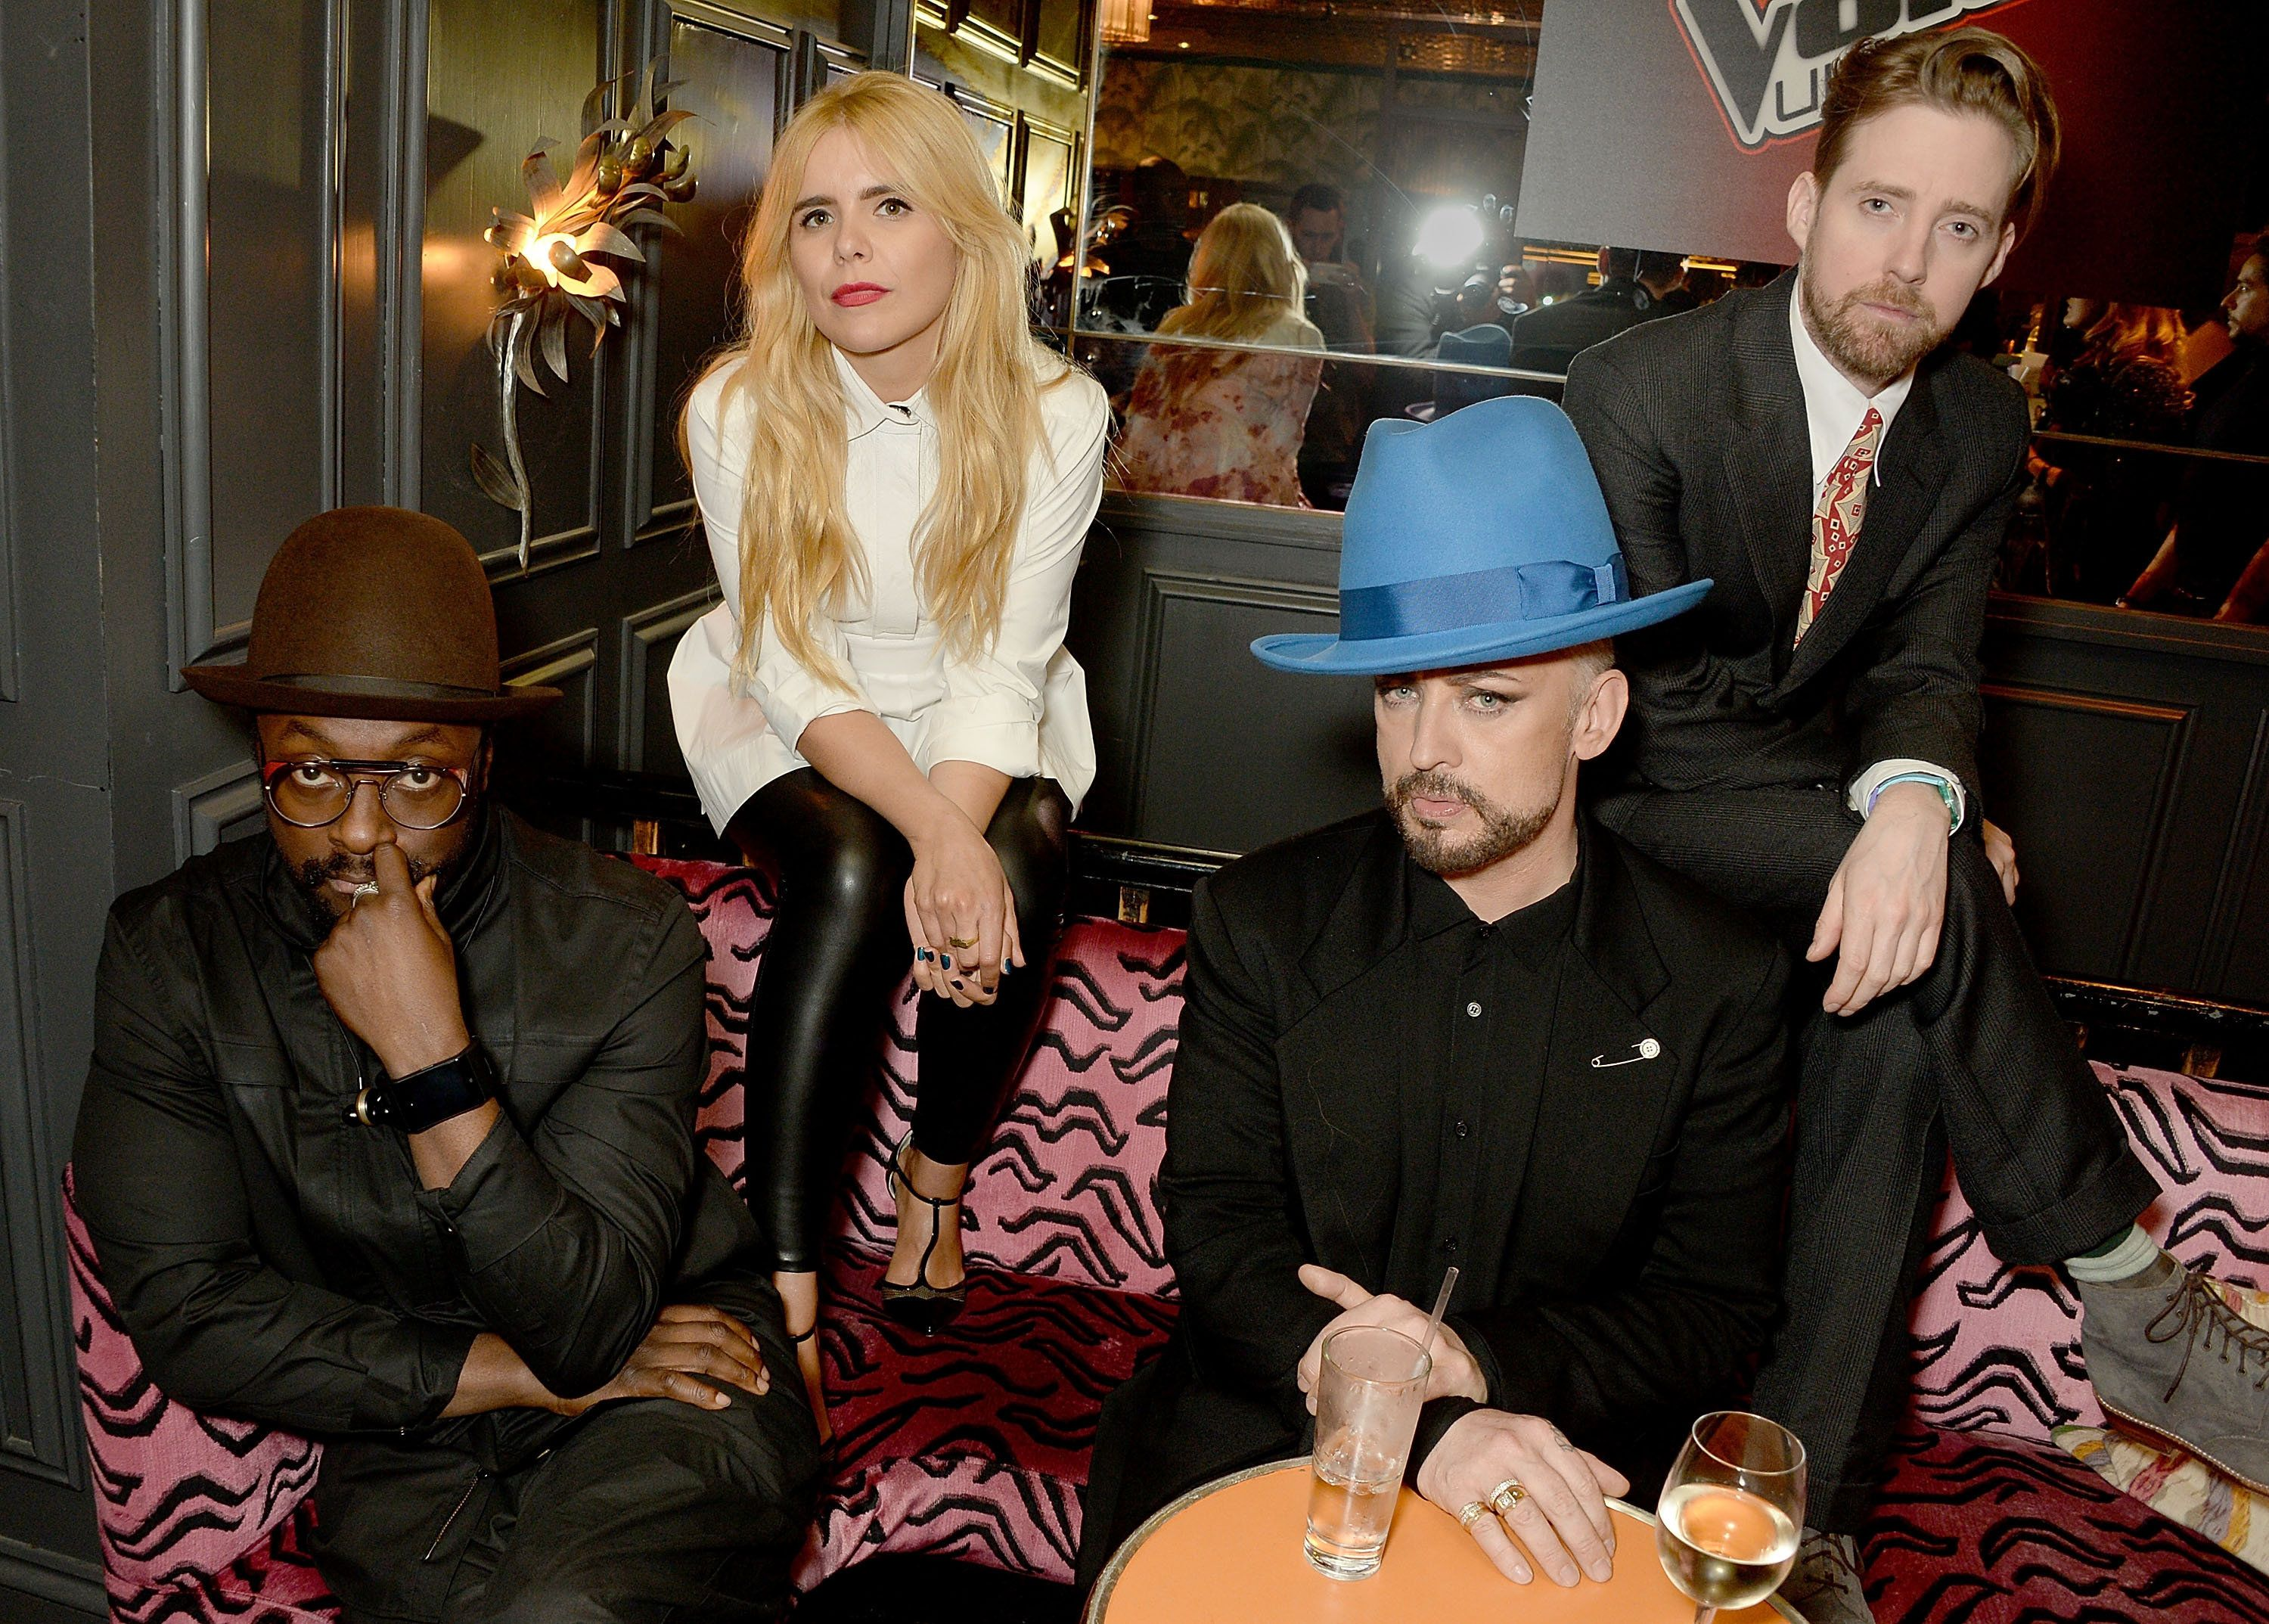 Paloma Faith with 'The Voice' coaches Will.i.am Boy George and Ricky